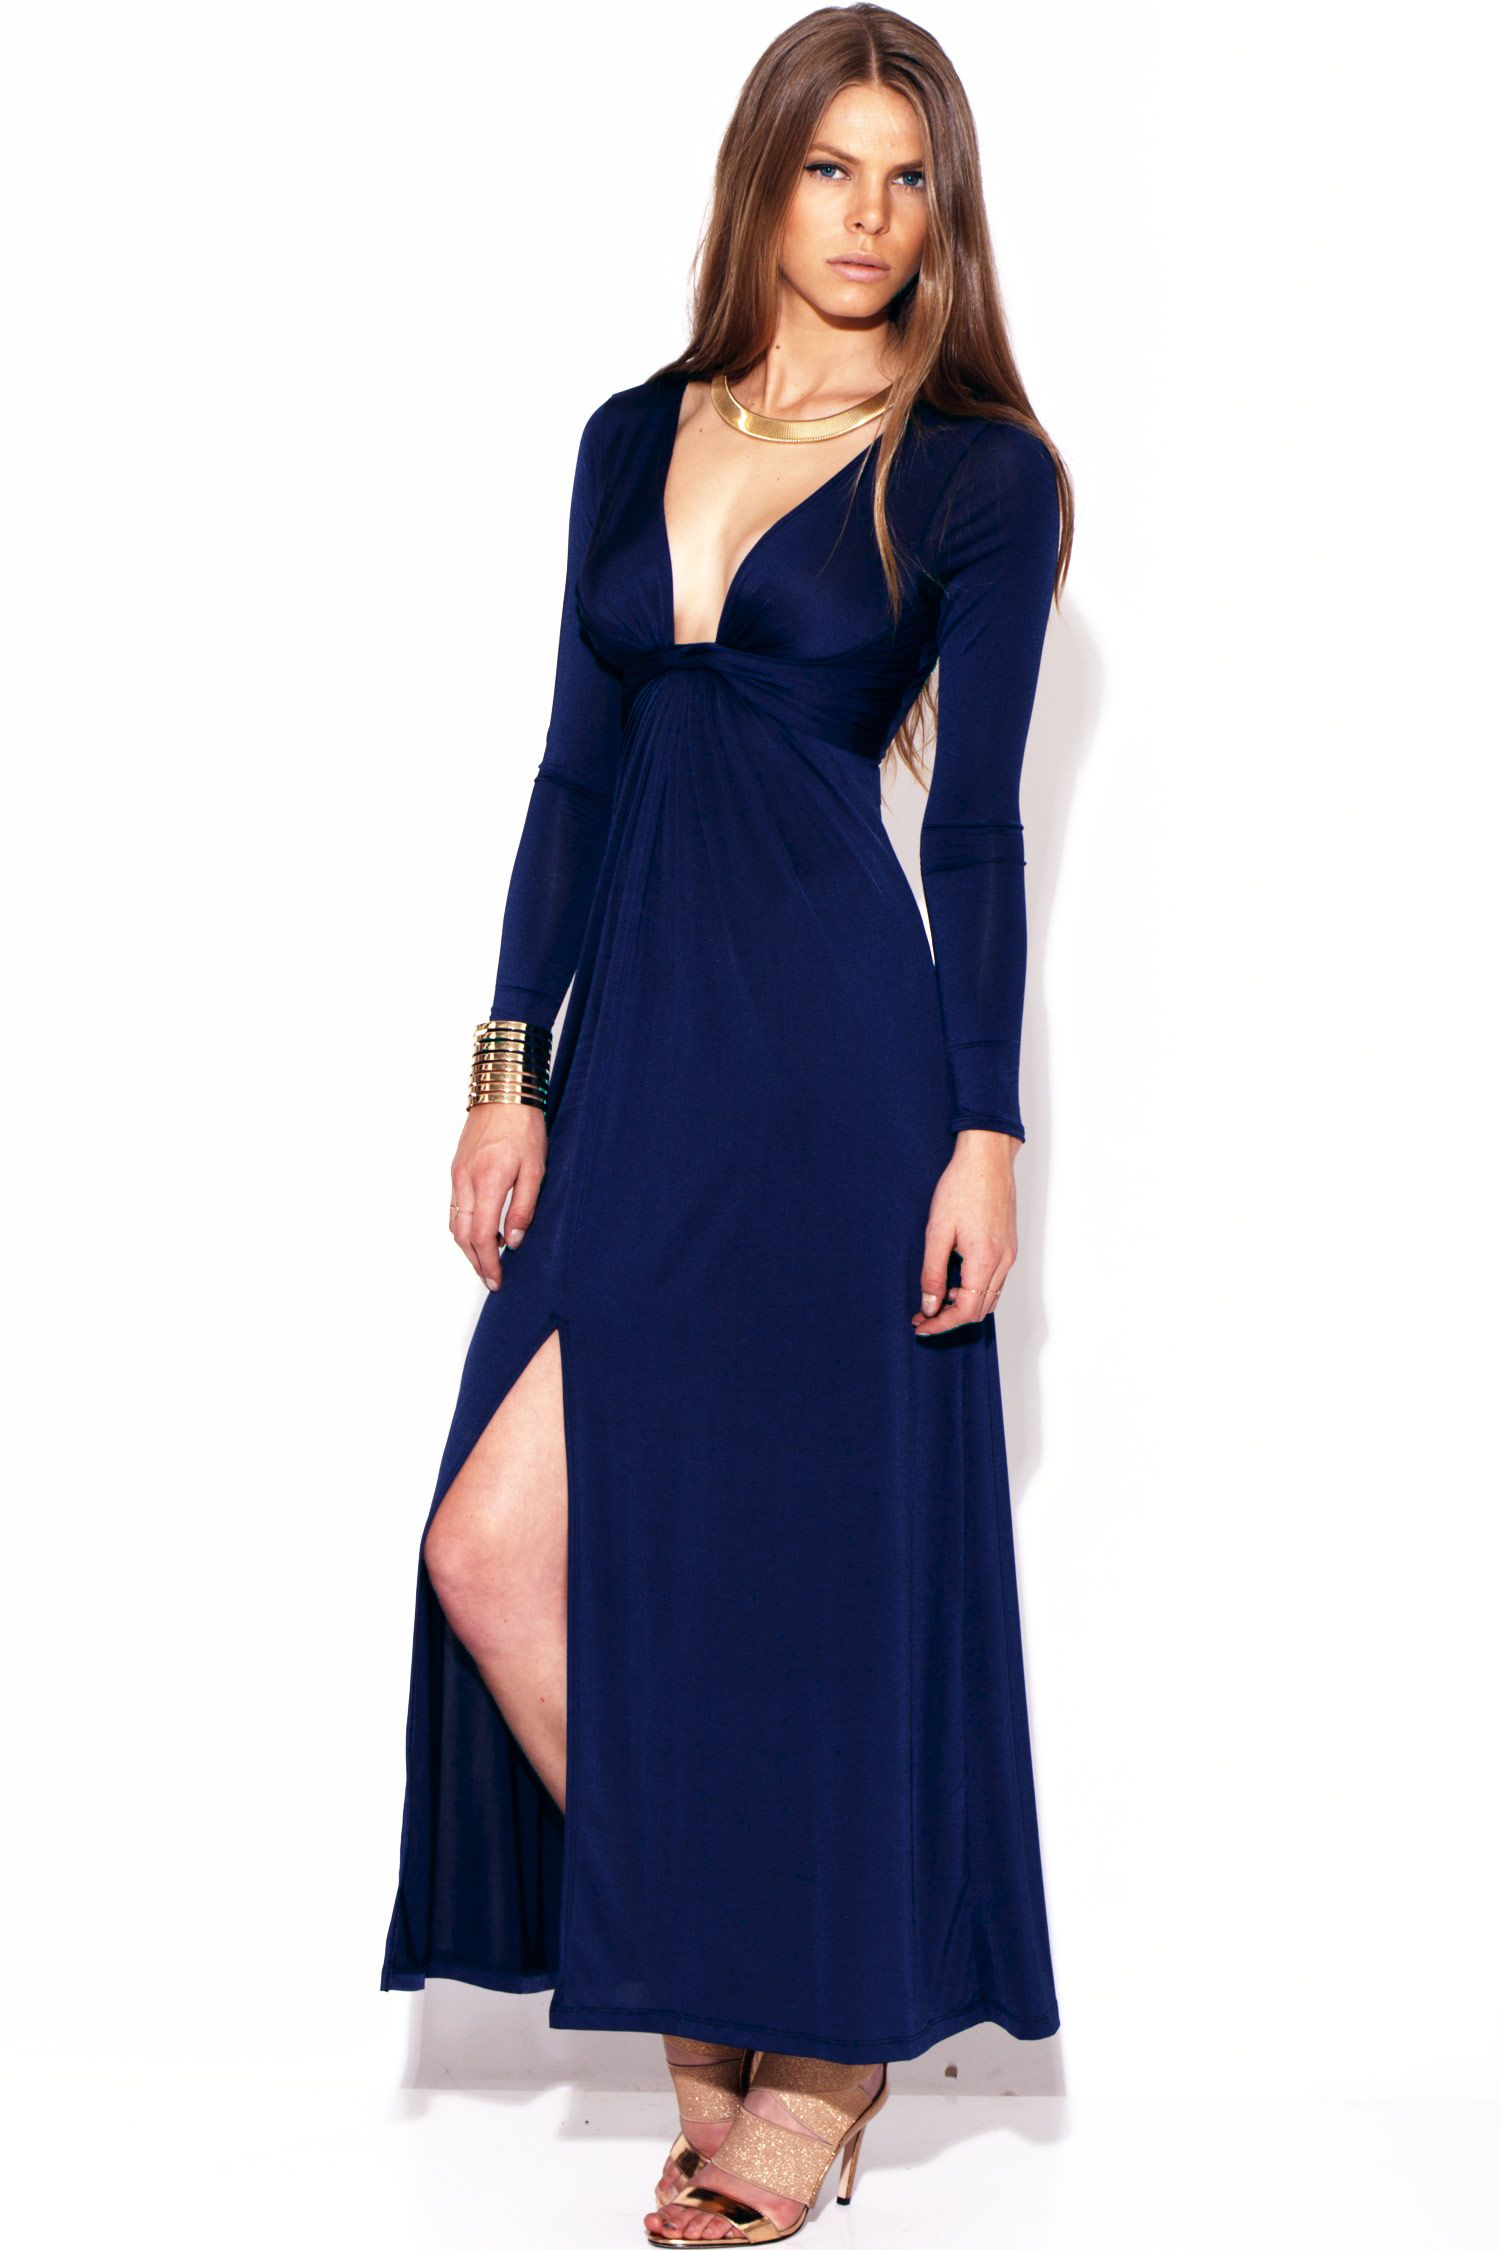 Midnight blue deep v knot front high slit long sleeve evening party